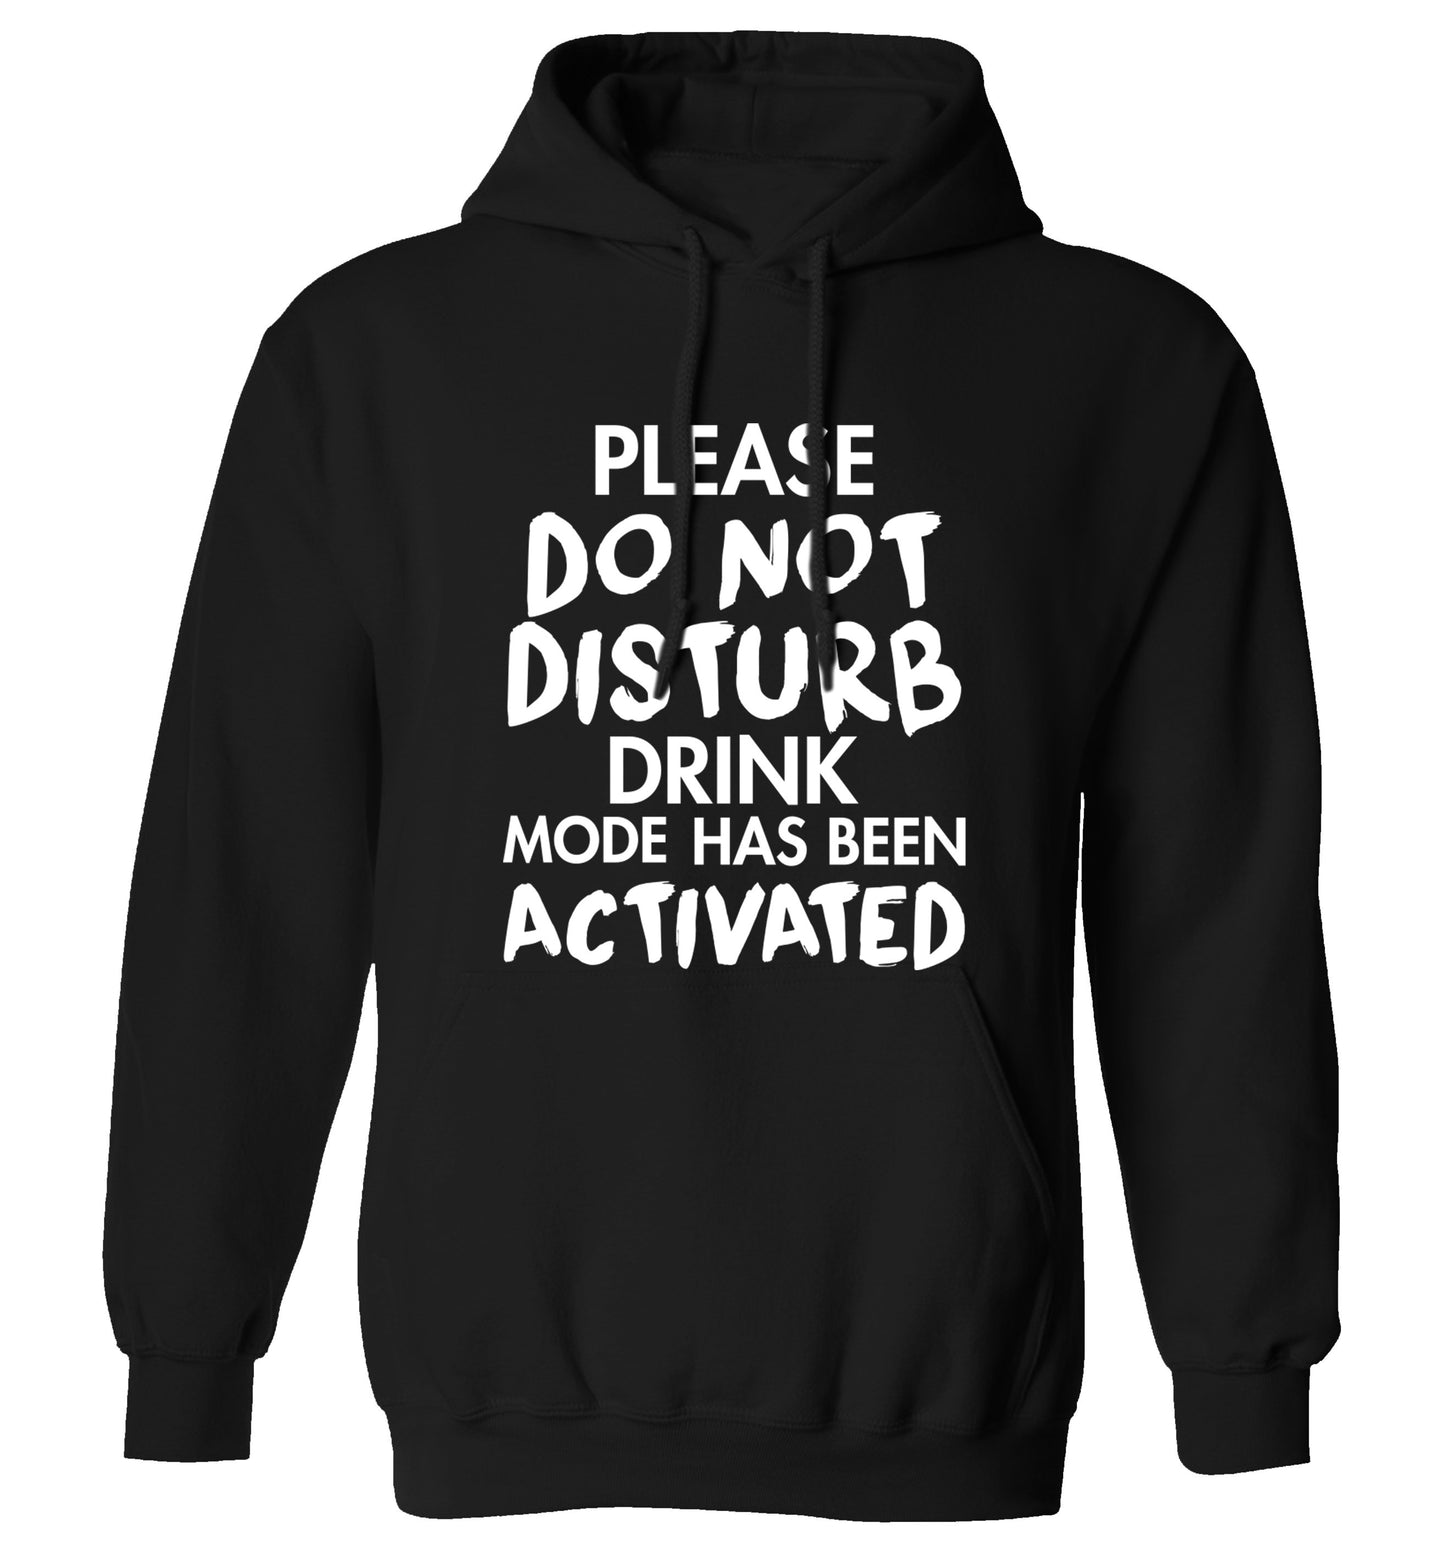 Please do not disturb drink mode has been activated adults unisex black hoodie 2XL